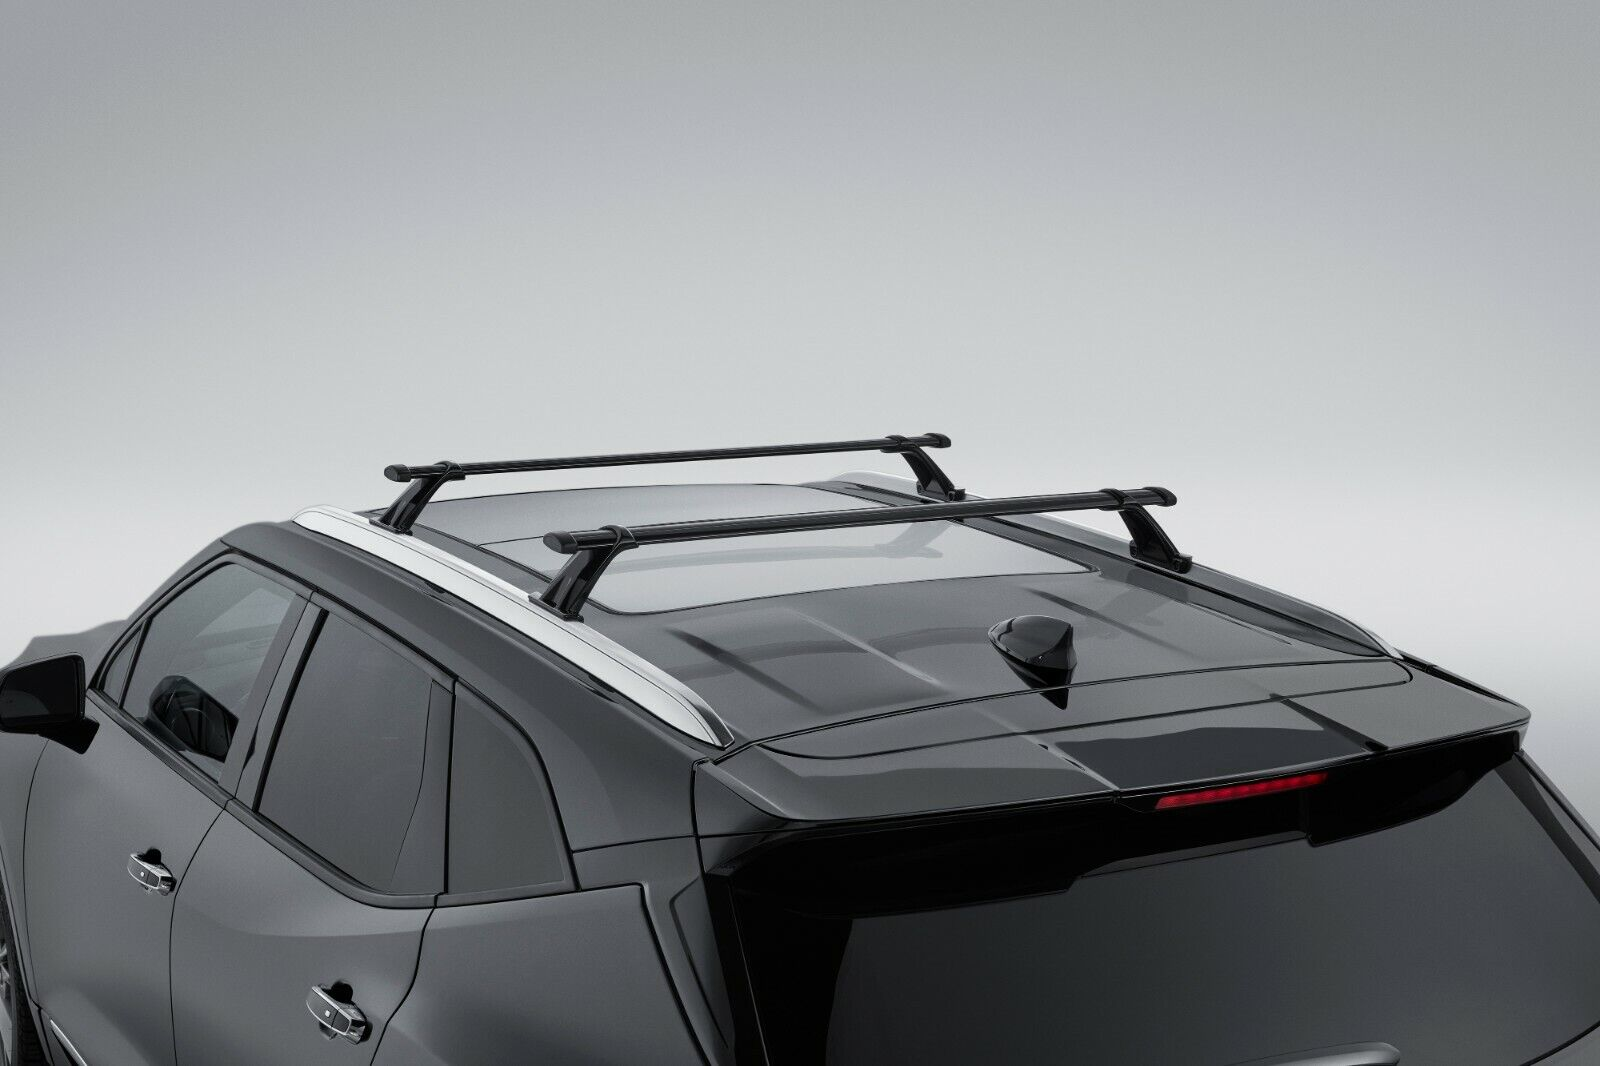 ::GM OEM Chevrolet Blazer W/OUT SUNROOF Removable Gloss Black Roof Cross Rails NEW